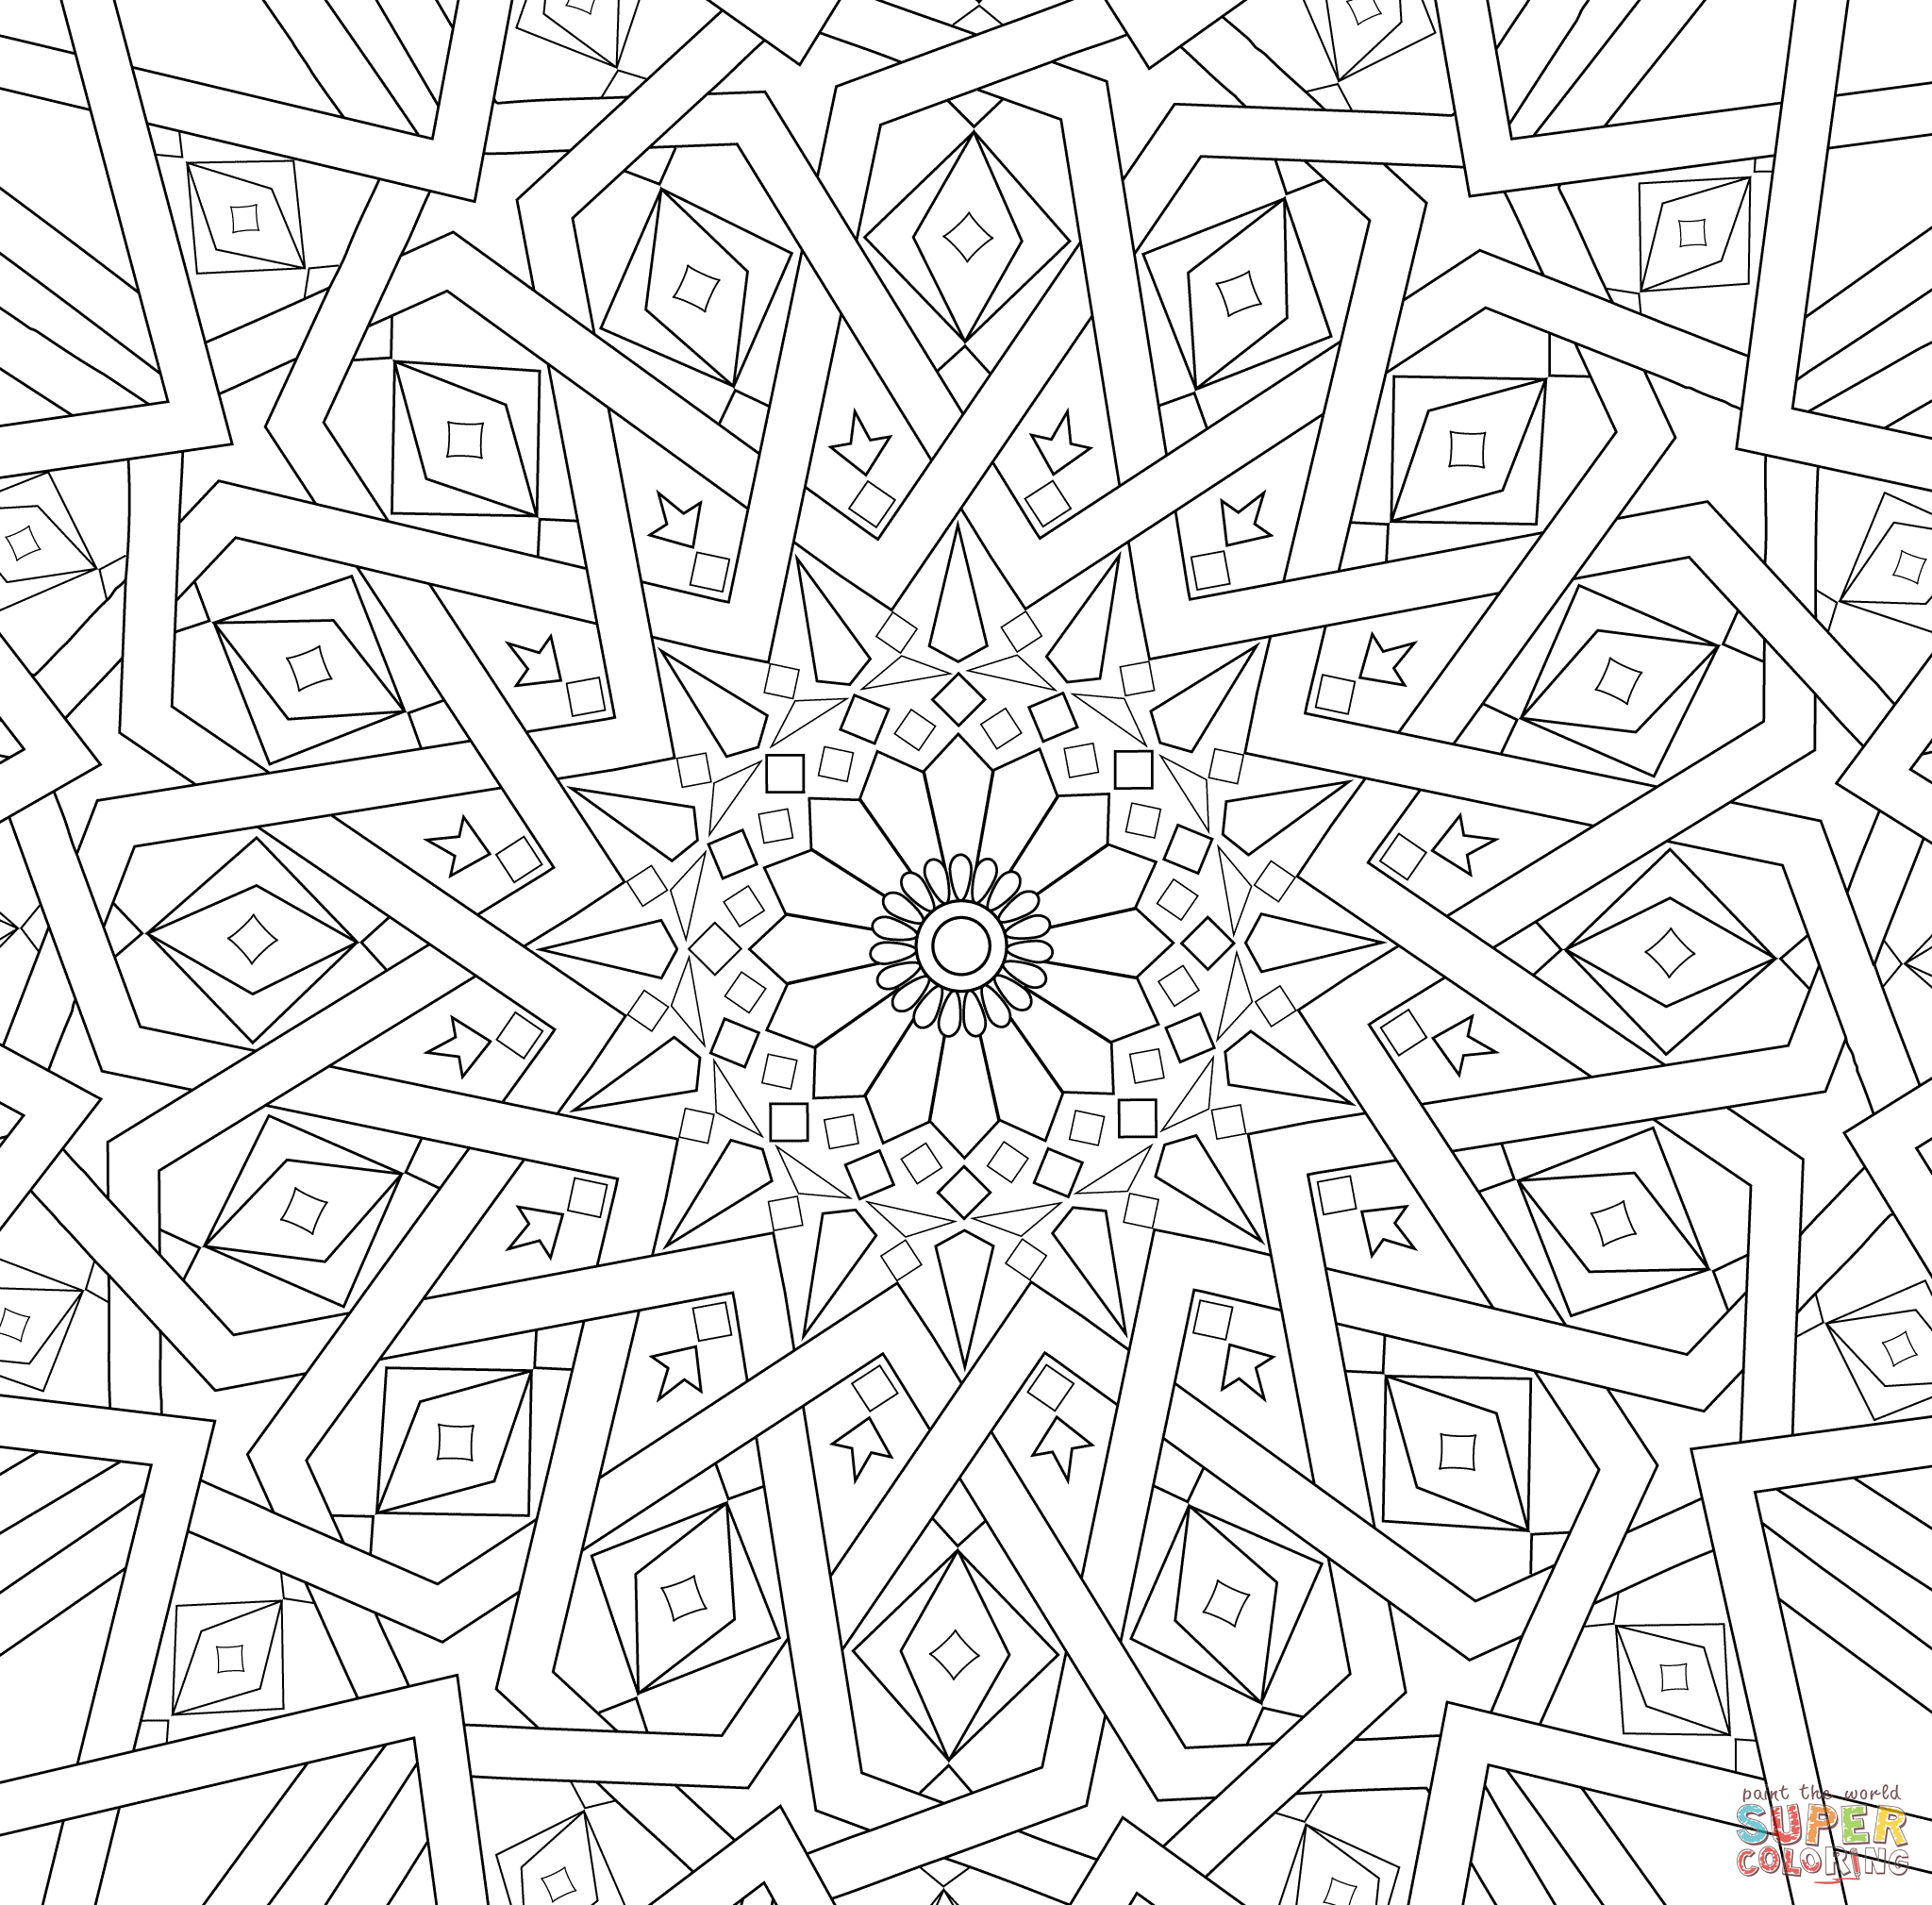 traditional islamic mosaic coloring page from mosaic category select from 25994 printable crafts of cartoons nature animals bible and many more